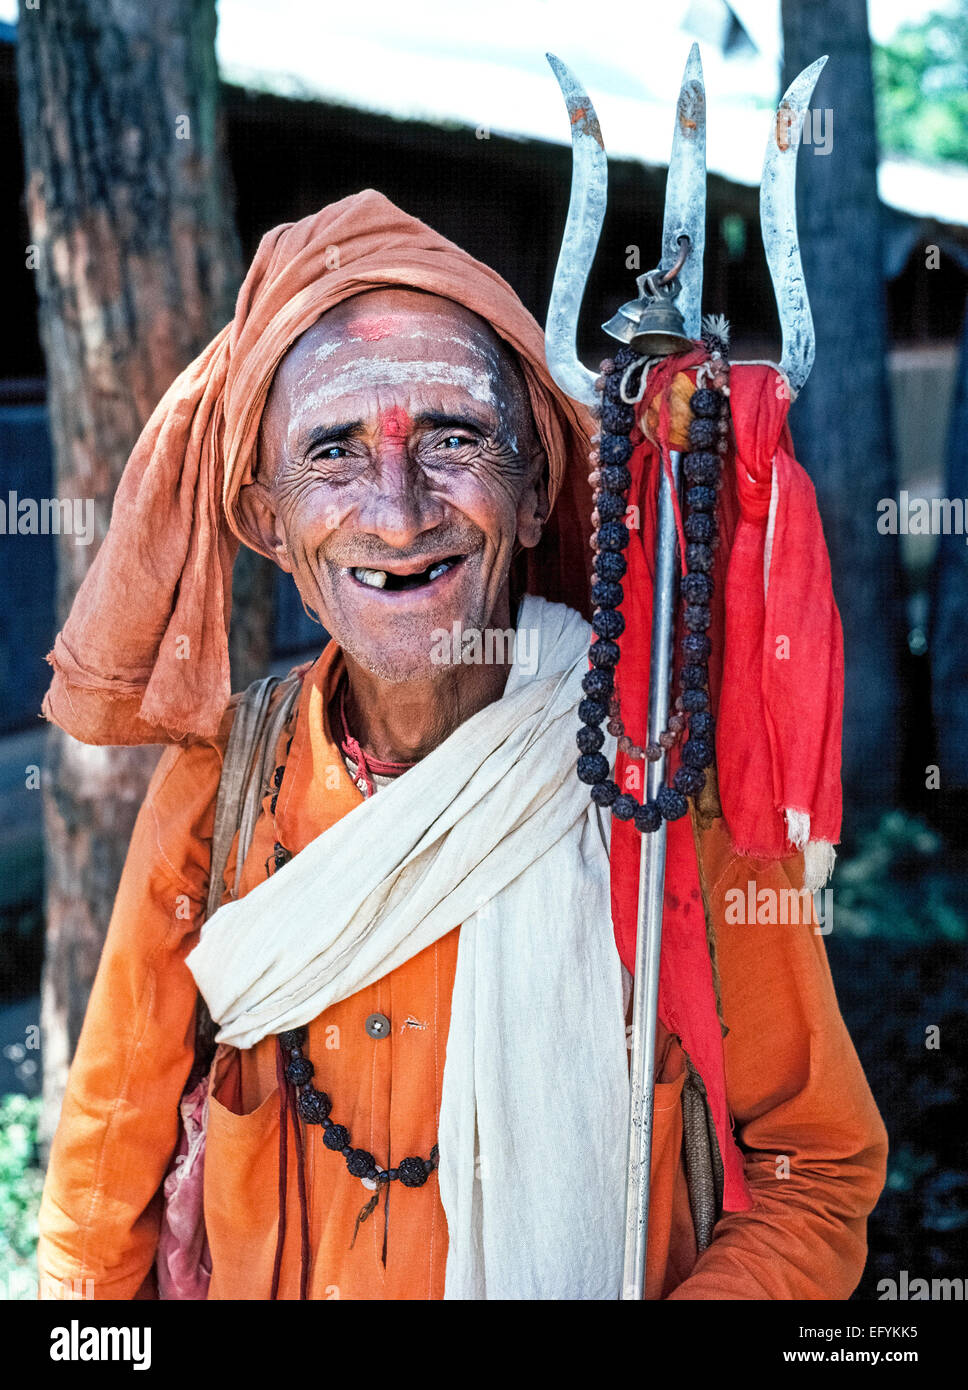 An elderly almost-toothless Hindu holy man in well-worn clothing holds a metal trident and smiles for tourists in - Stock Image